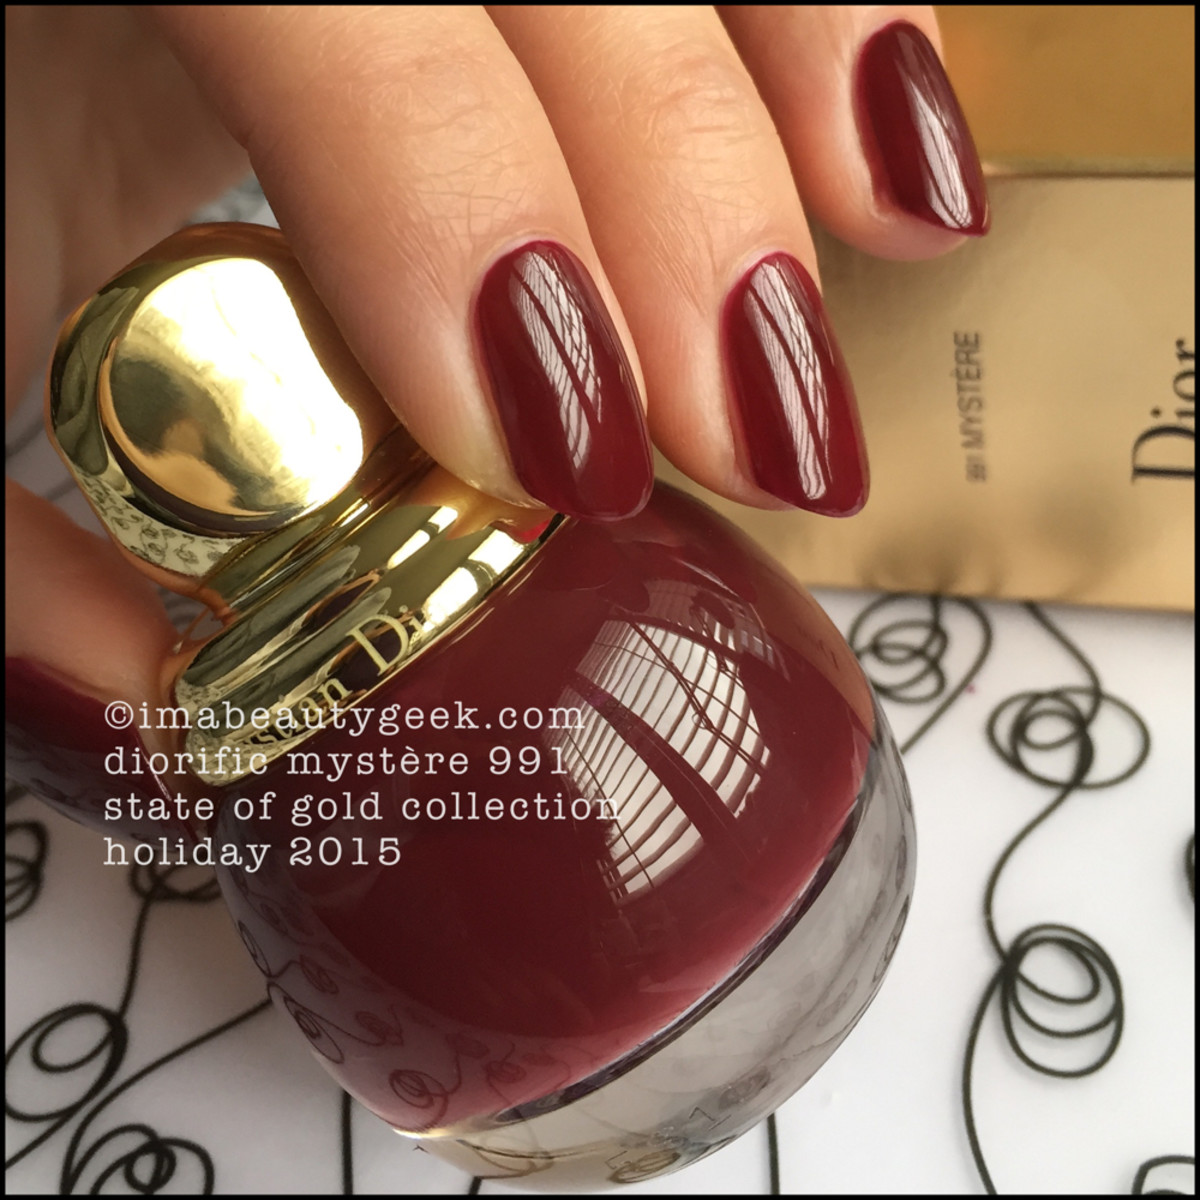 Dior State of Gold Holiday 2015_Dior Mystere 991 Vernis